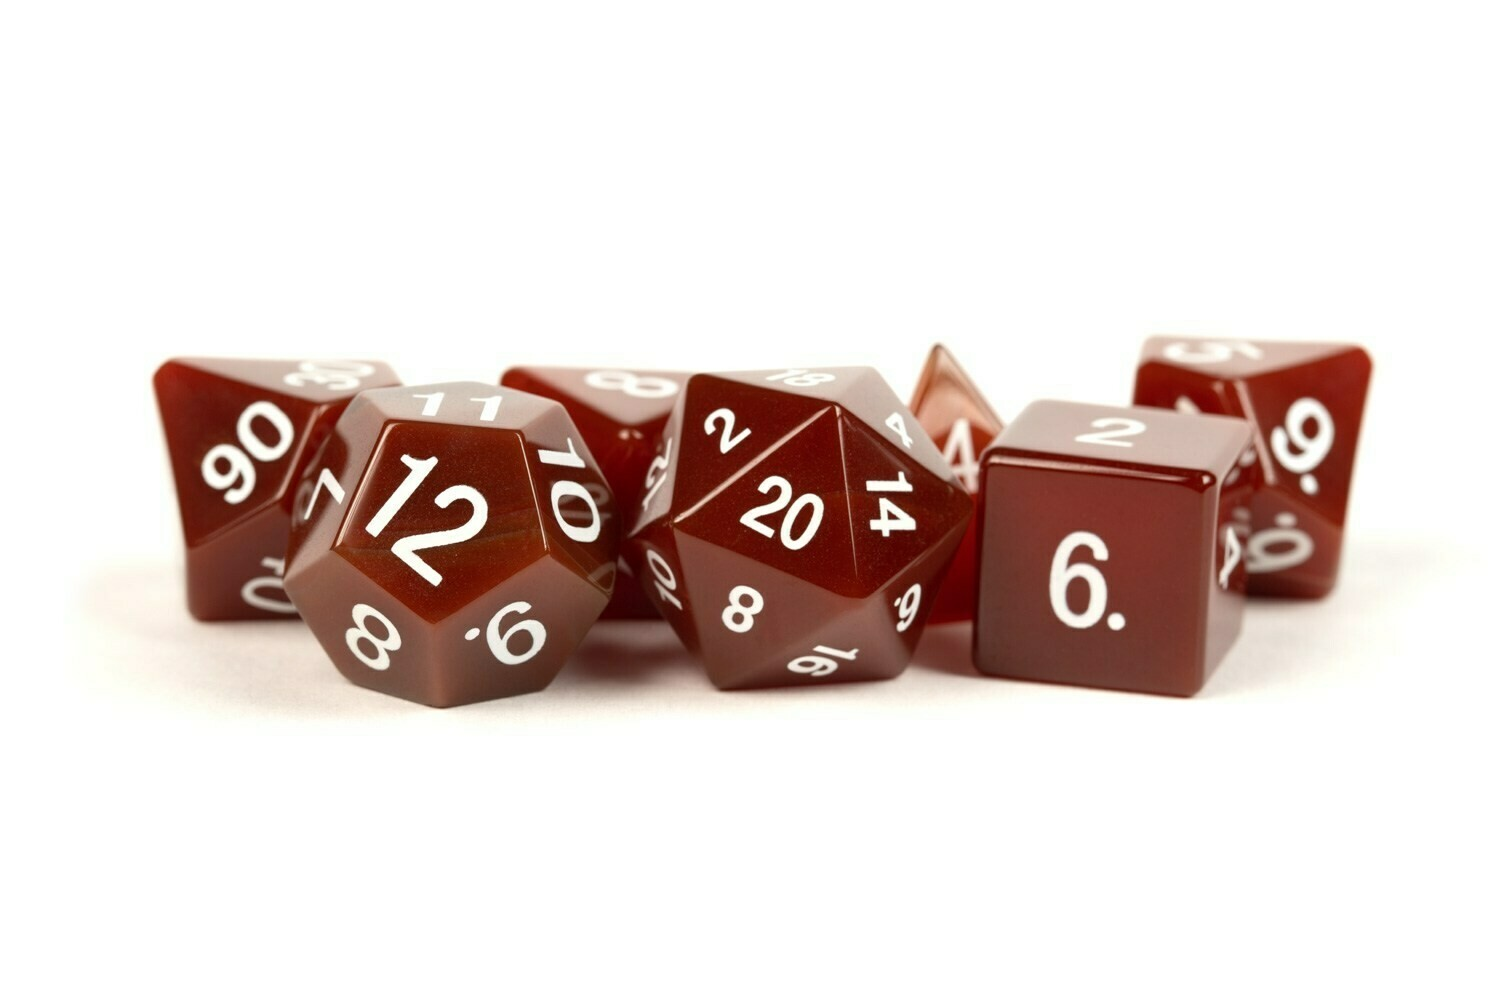 Carnelian: Full-Sized 16mm Polyhedral Dice Set RPG Tabletop Gaming Roleplay